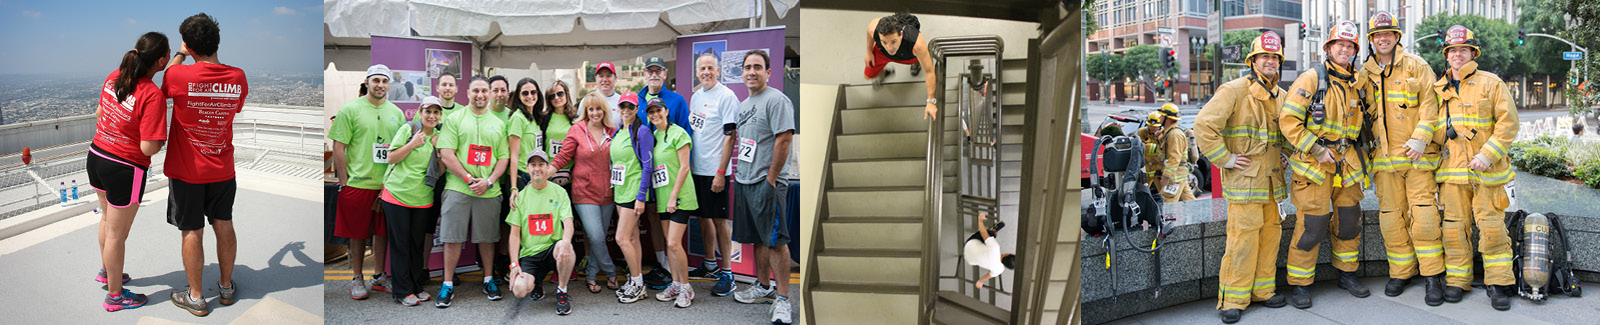 Fight For Air Climb - Los Angeles. Step Up to the Challenge!